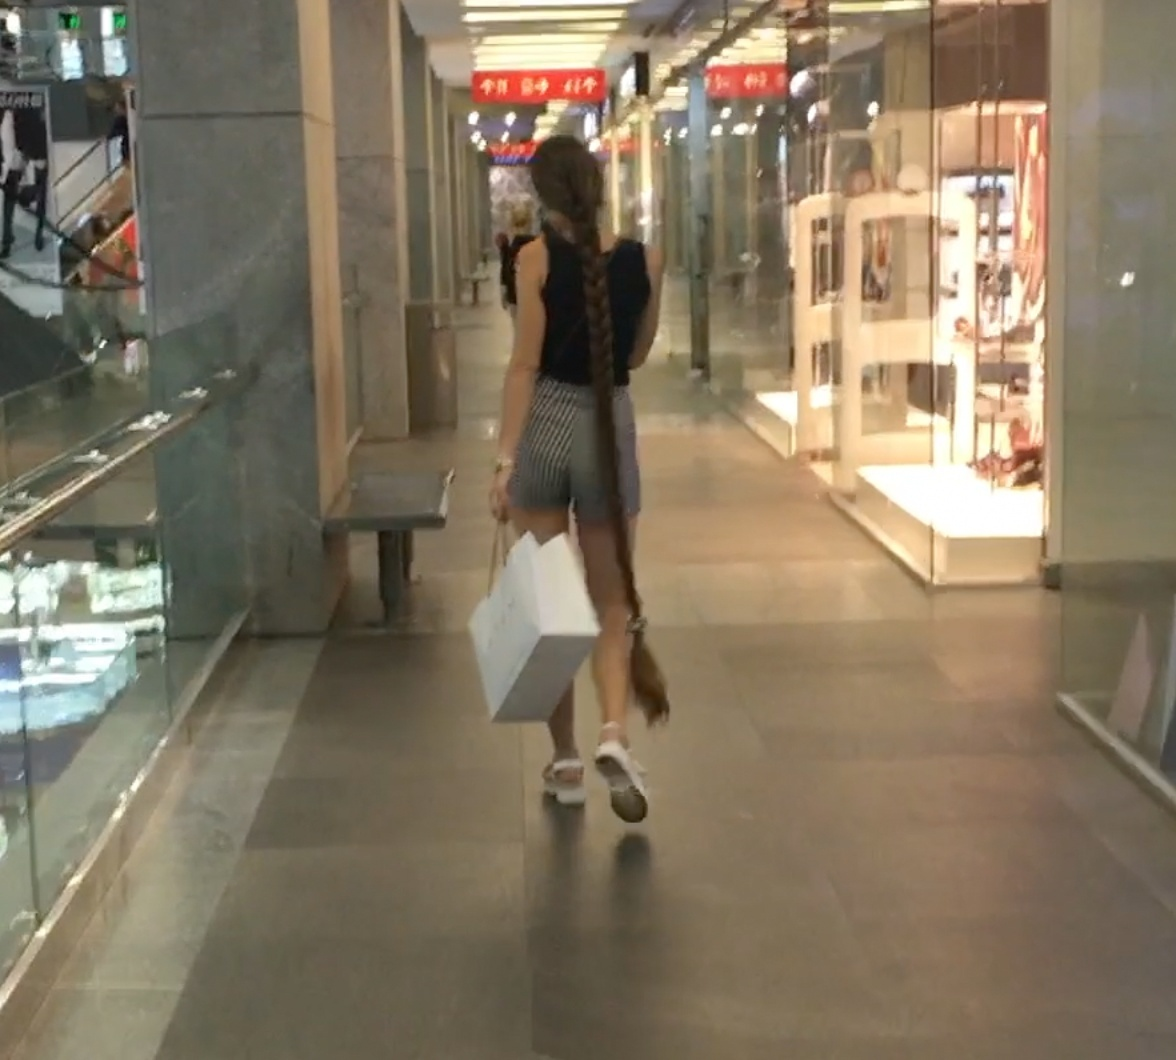 VIDEO - Rapunzel is out shopping